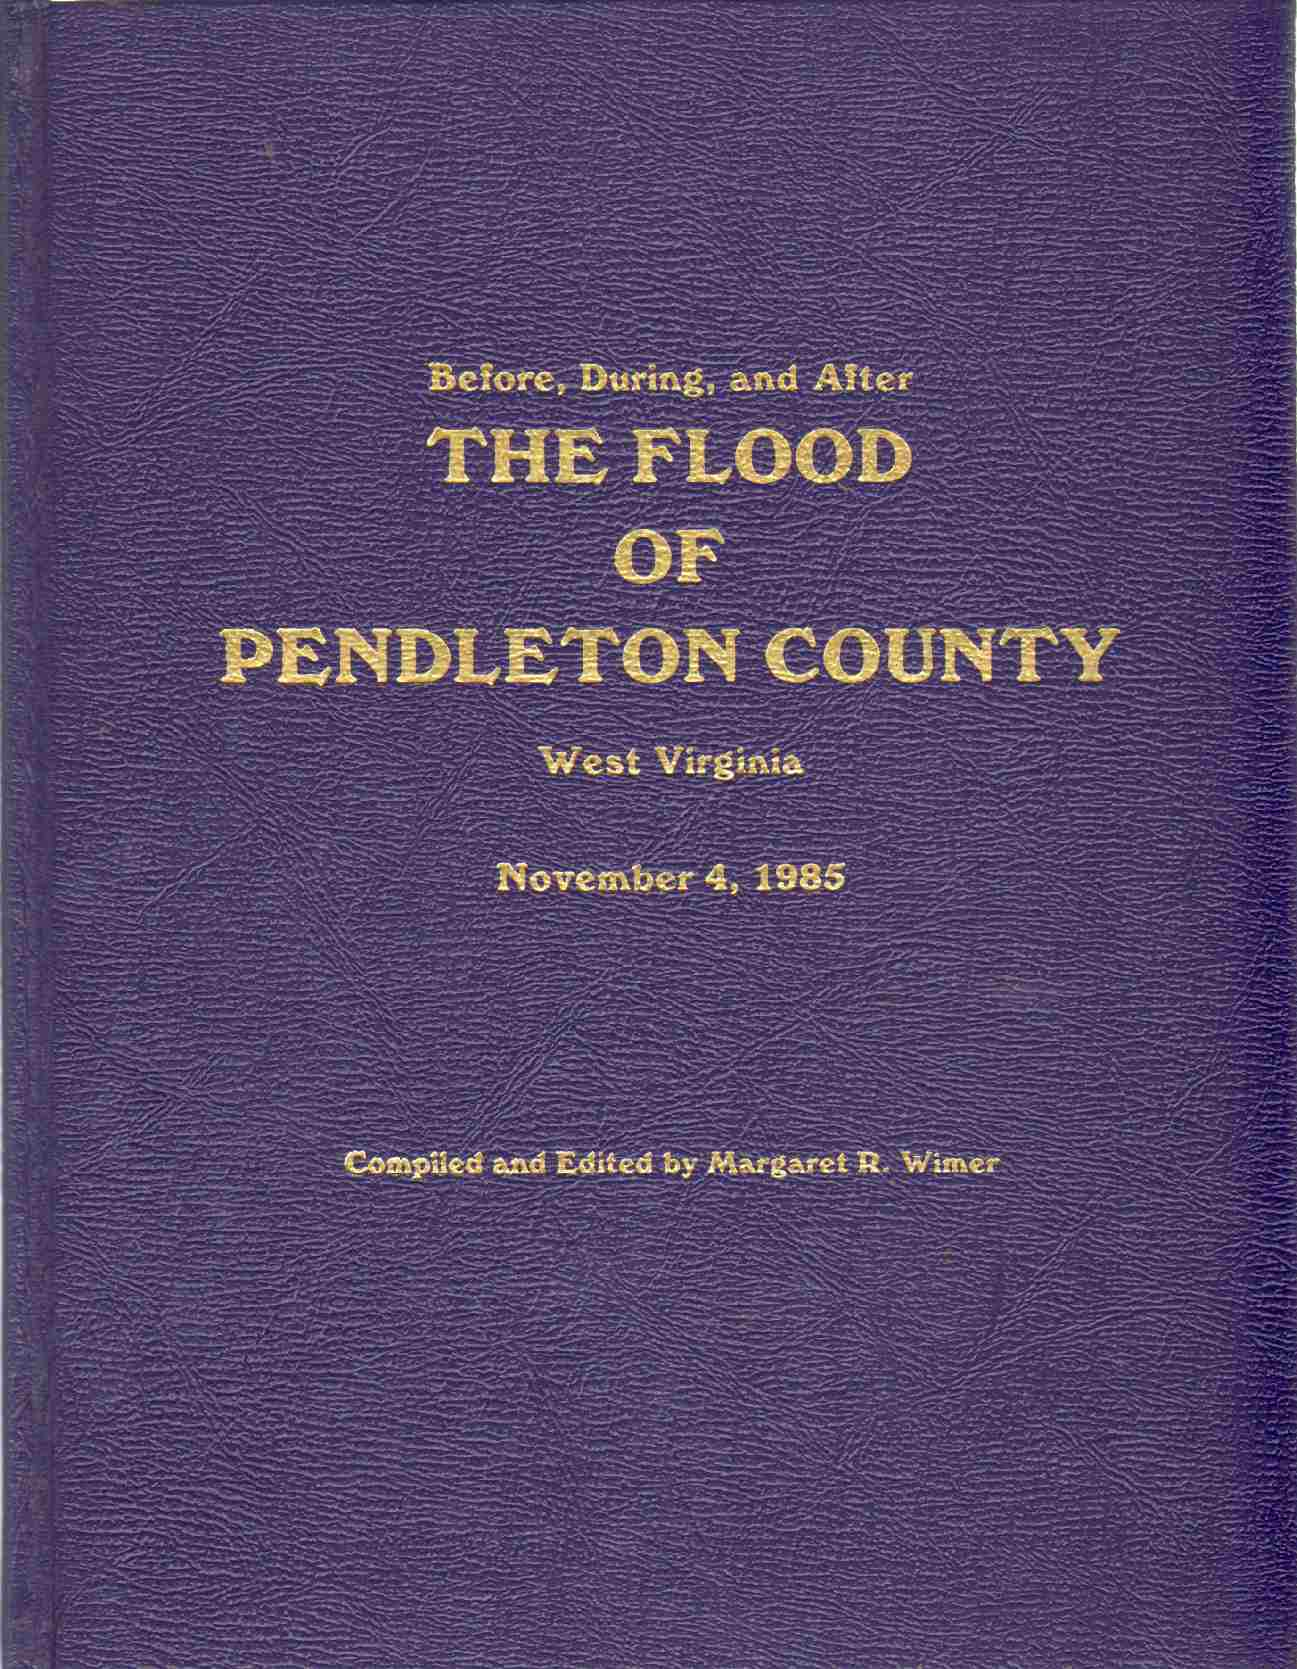 Image for BEFORE, DURING AND AFTER THE FLOOD OF PENDLETON COUNTY, WEST VIRGINIA, NOVEMBER 4, 1985